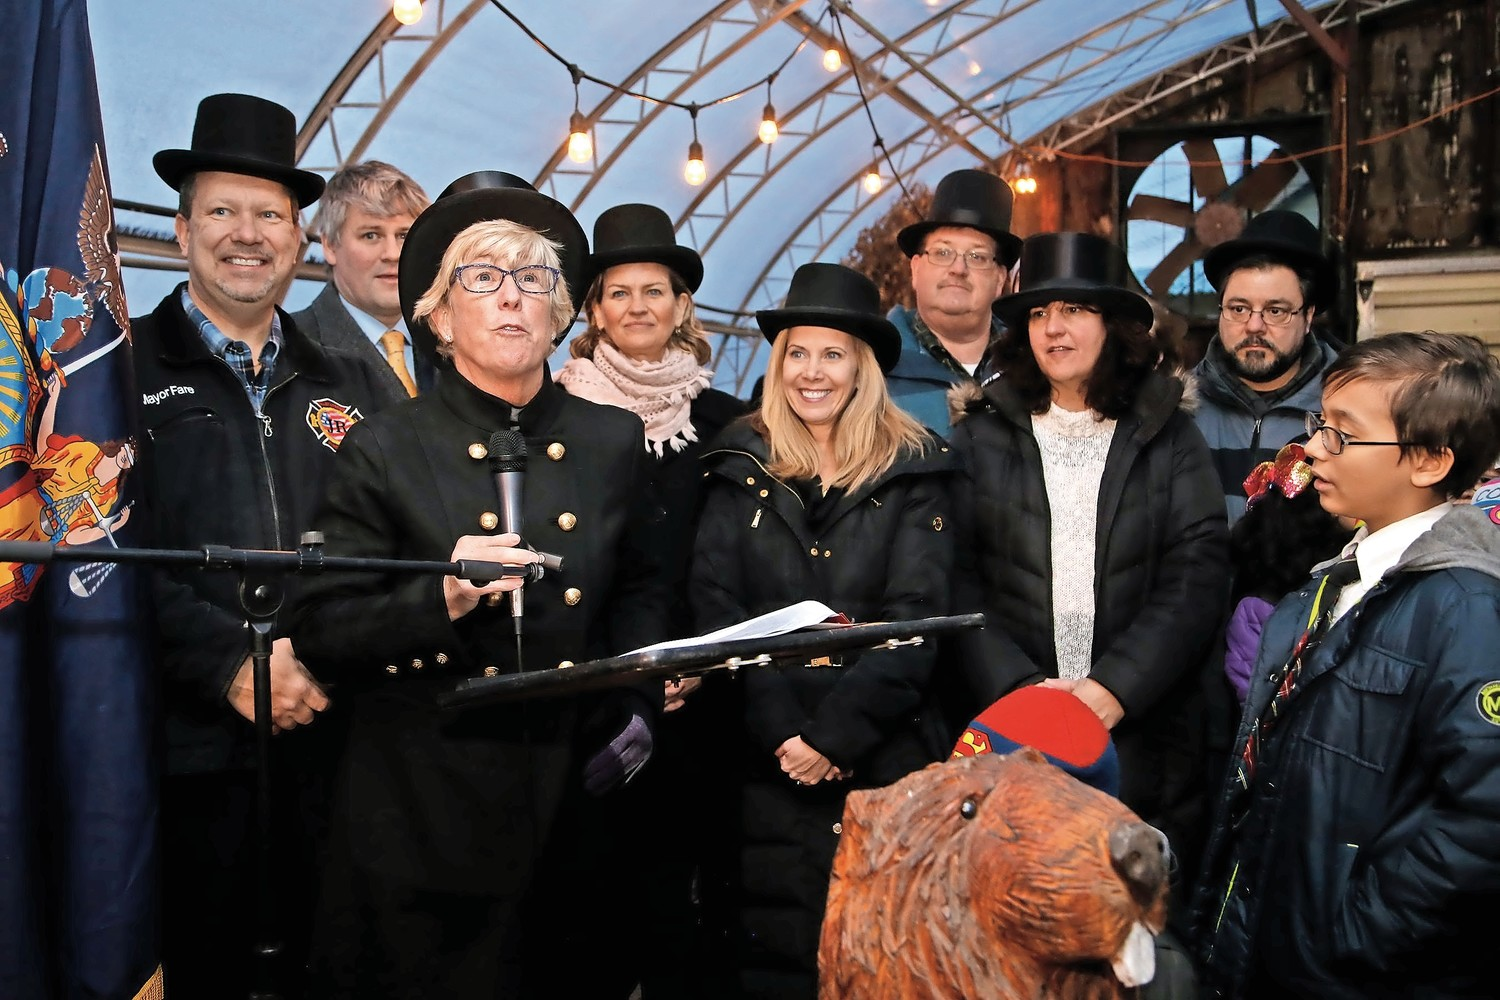 Town and county officials gathered around Malverne Mayor Patti Ann McDonald for the village's 23rd annual Groundhog Day with Malverne Mel on Feb. 2.